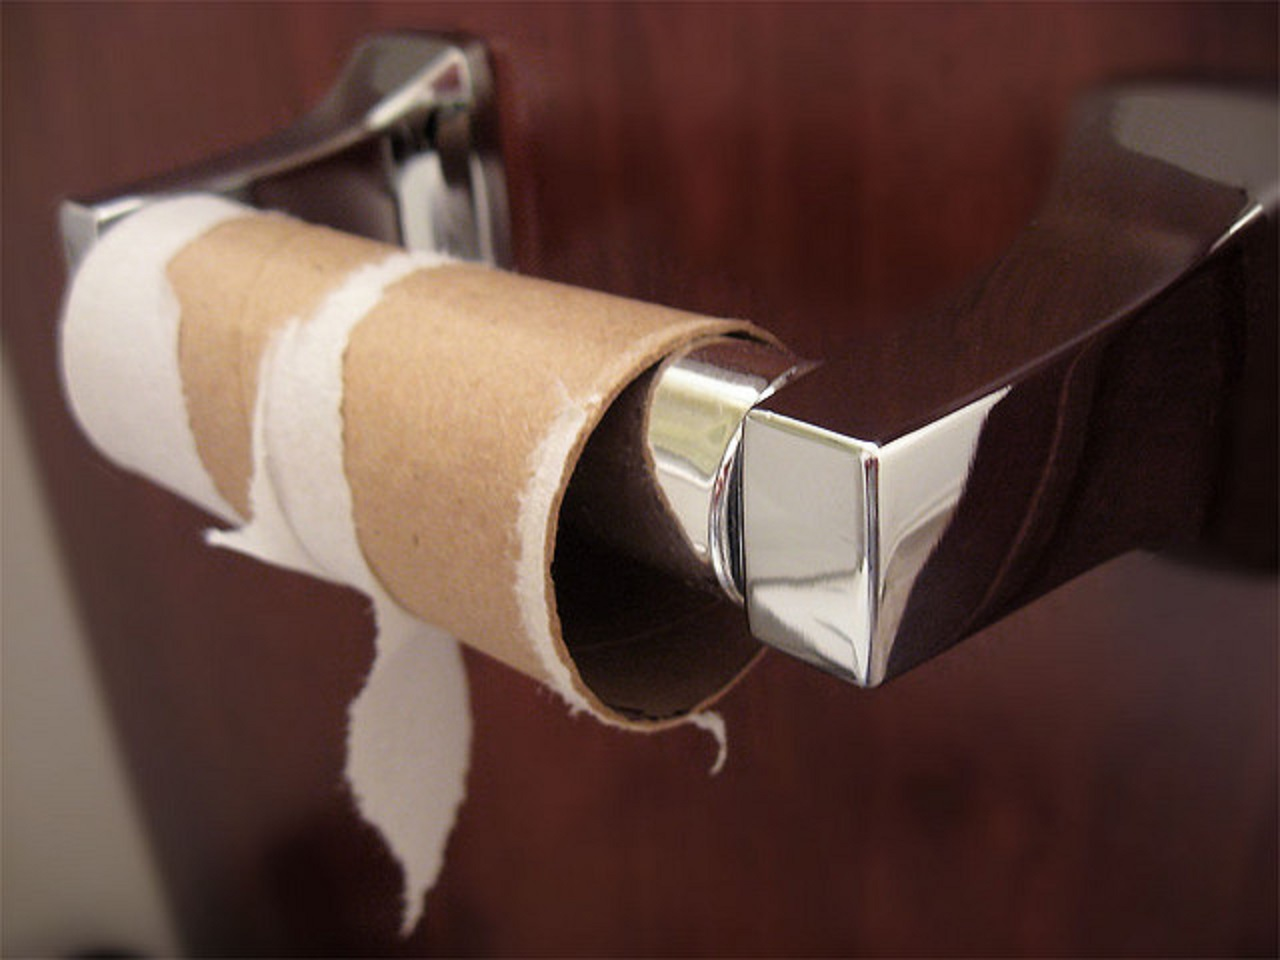 10 Unconventional Ways to Use Old Paper Towel and Toilet Paper Rolls ...